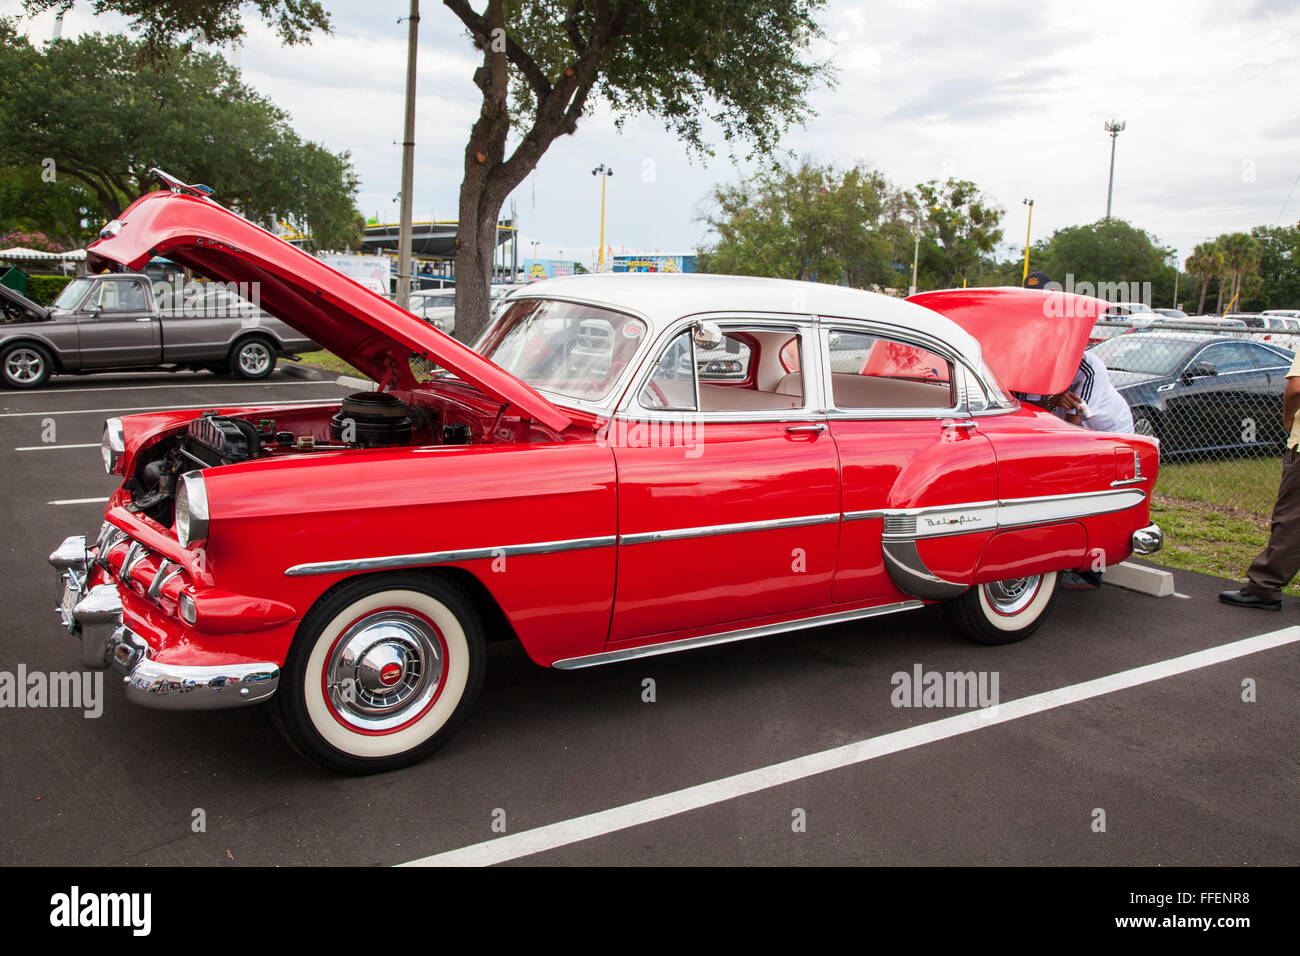 Chevrolet Bel Air Power Glide on display at Kissimmee Old Town weekly car cruise, Kissimmee Florida - Stock Image